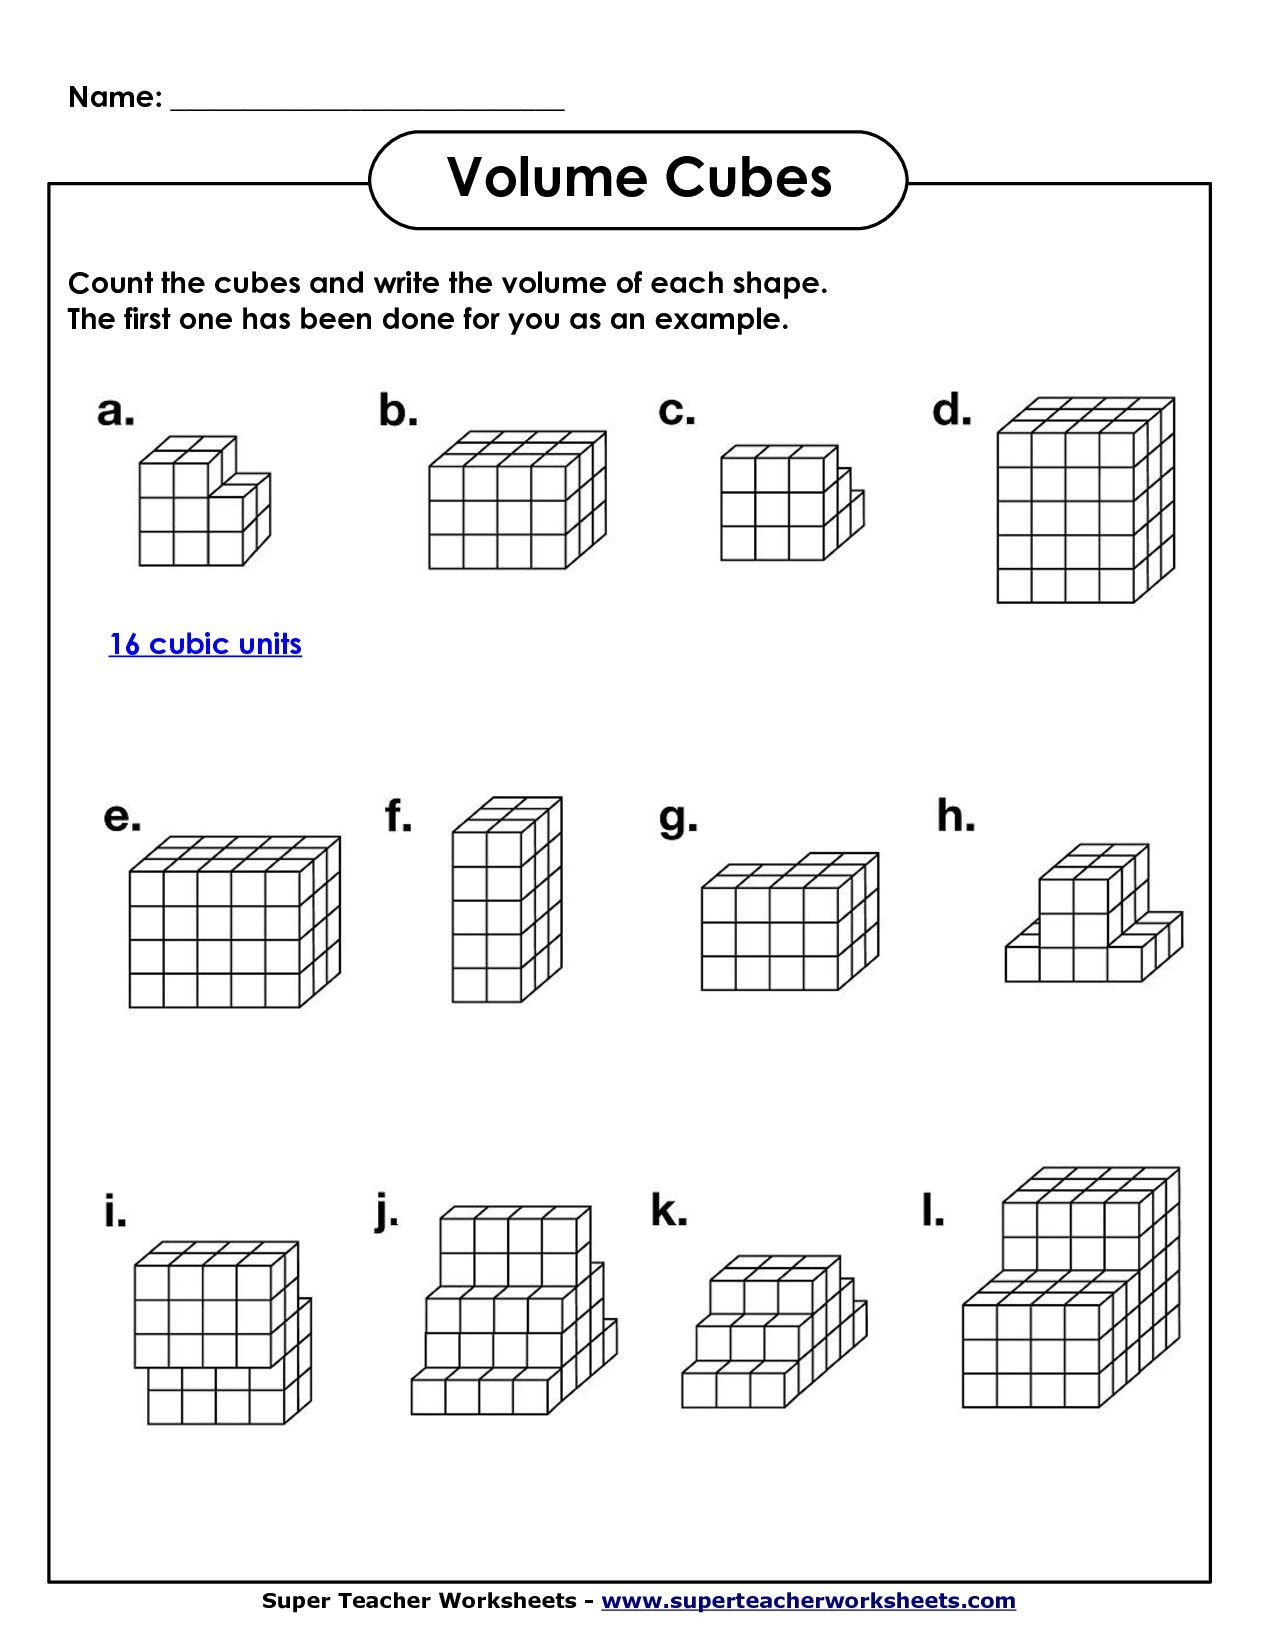 Worksheet Works Calculating Volume Image From